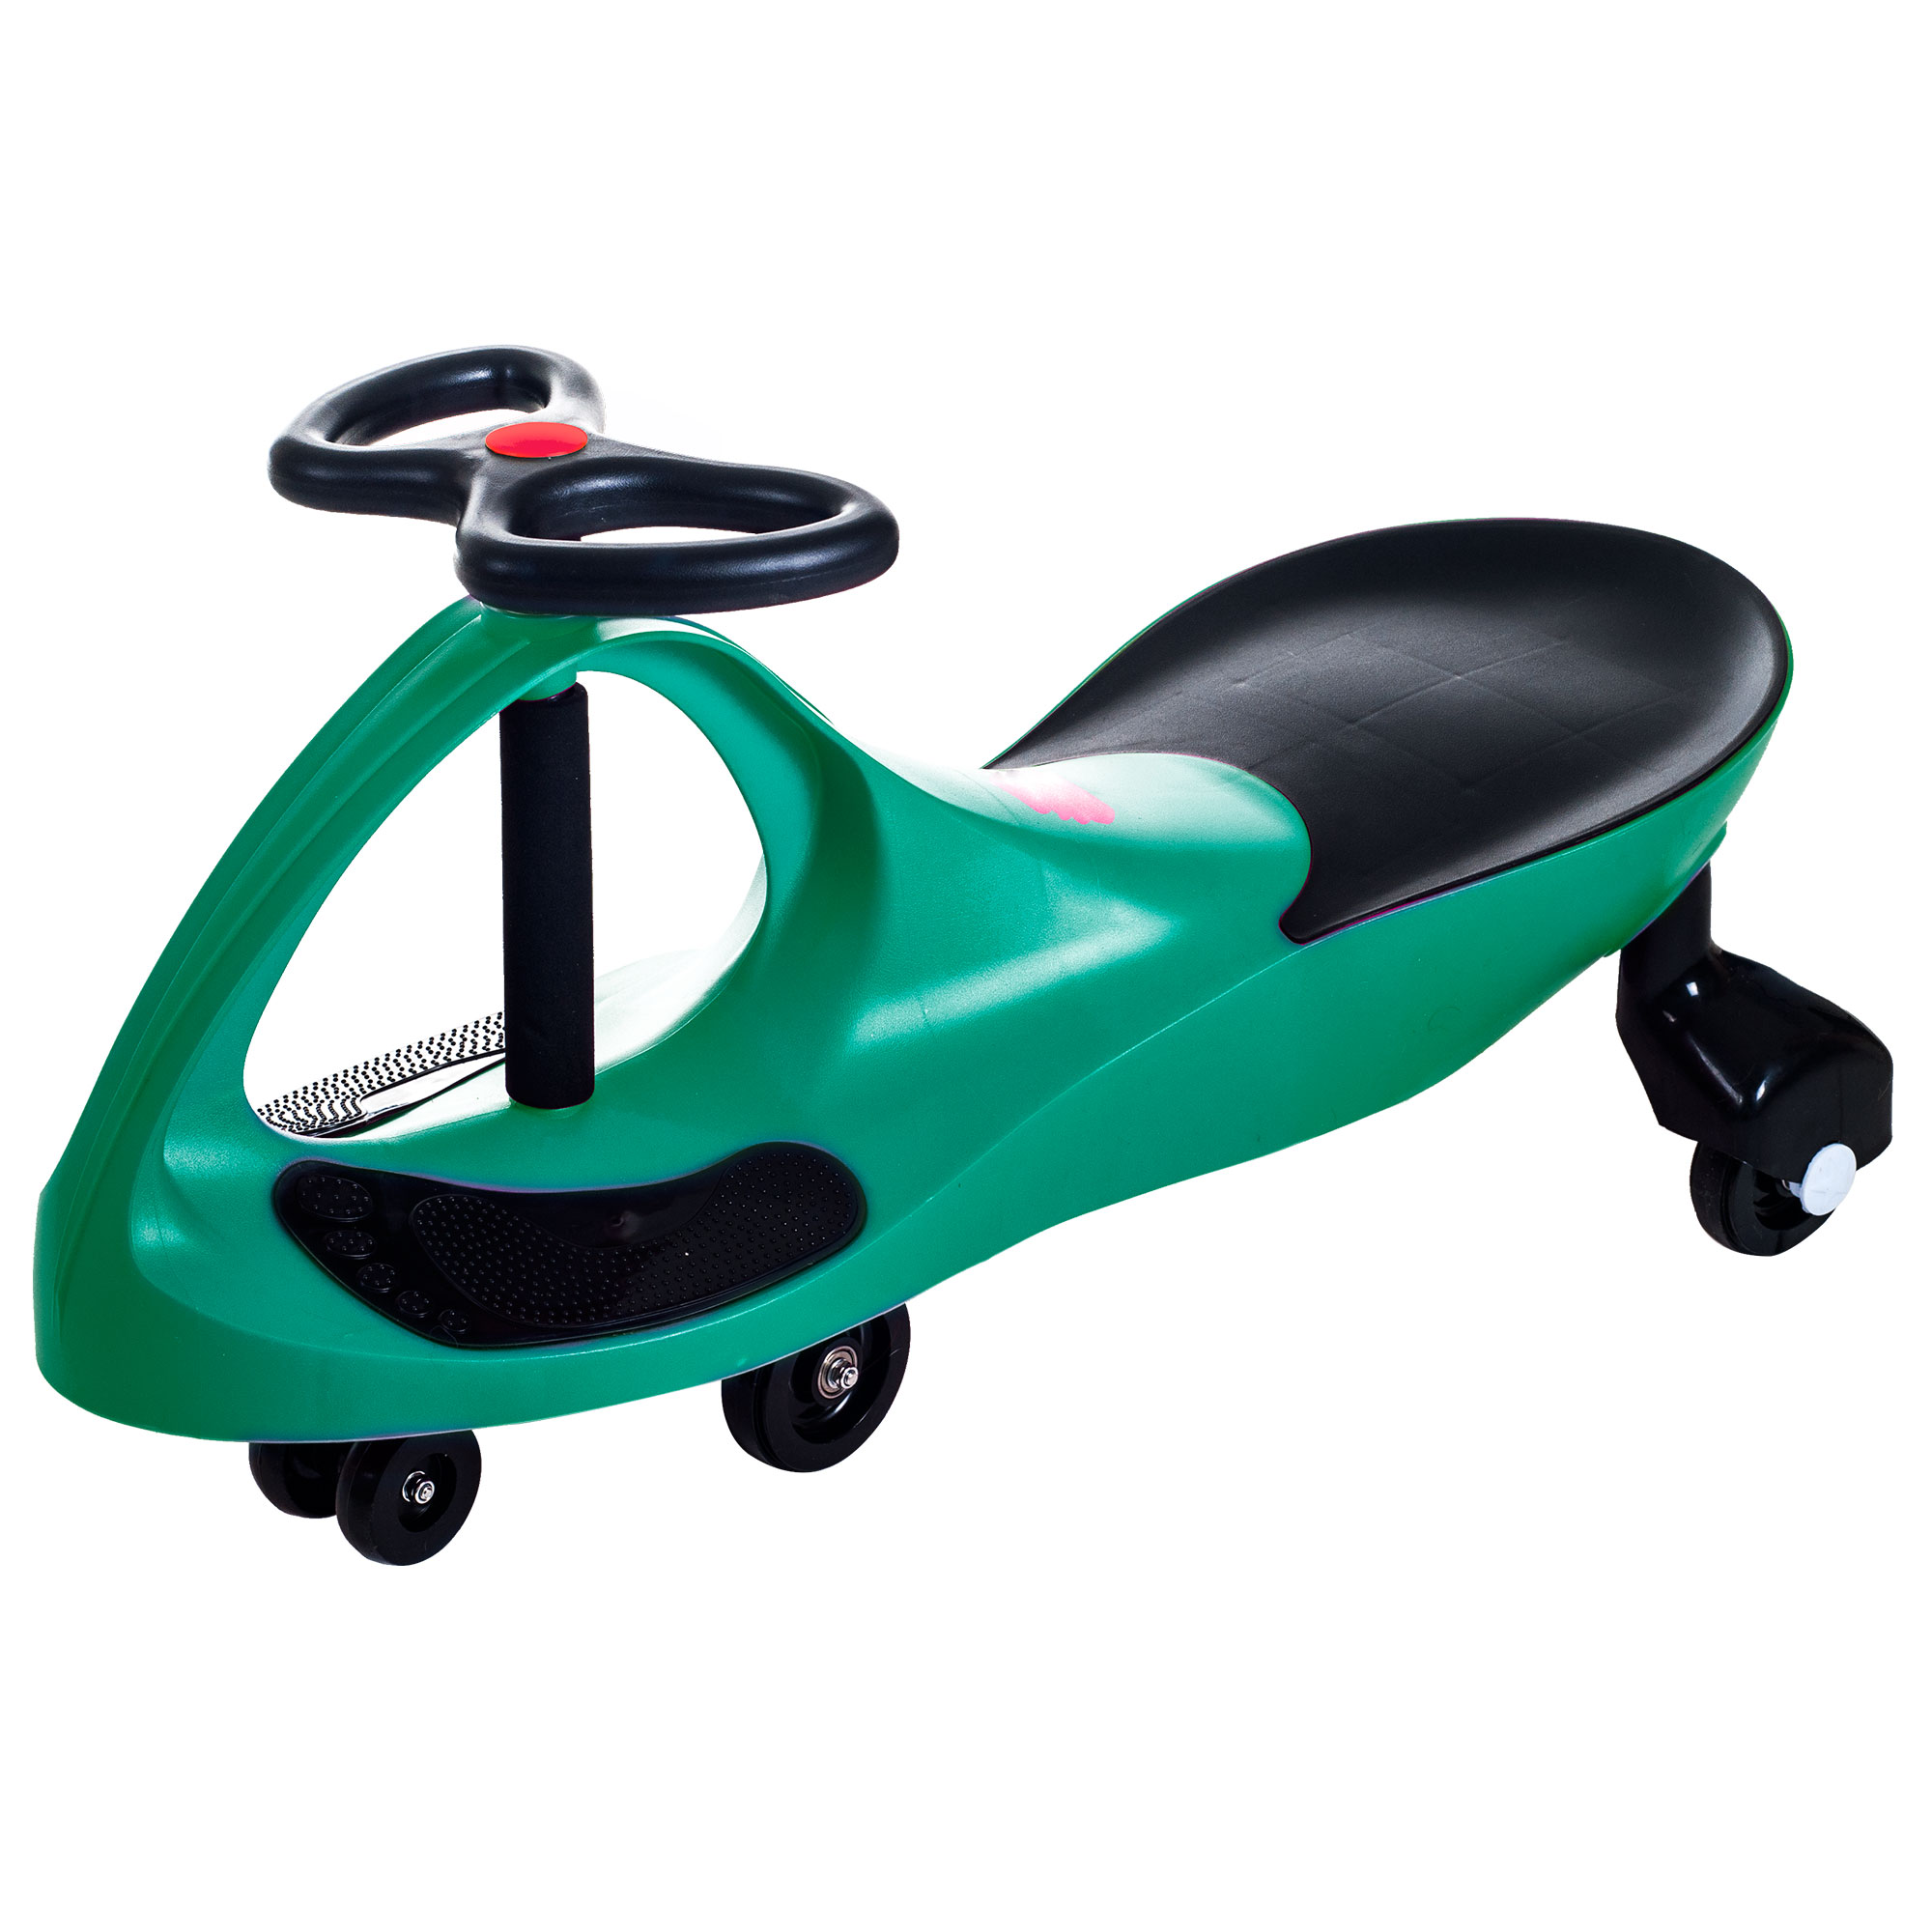 Upc 886511397804 Product Image For Lil Rider Green Wiggle Ride On Car Upcitemdb